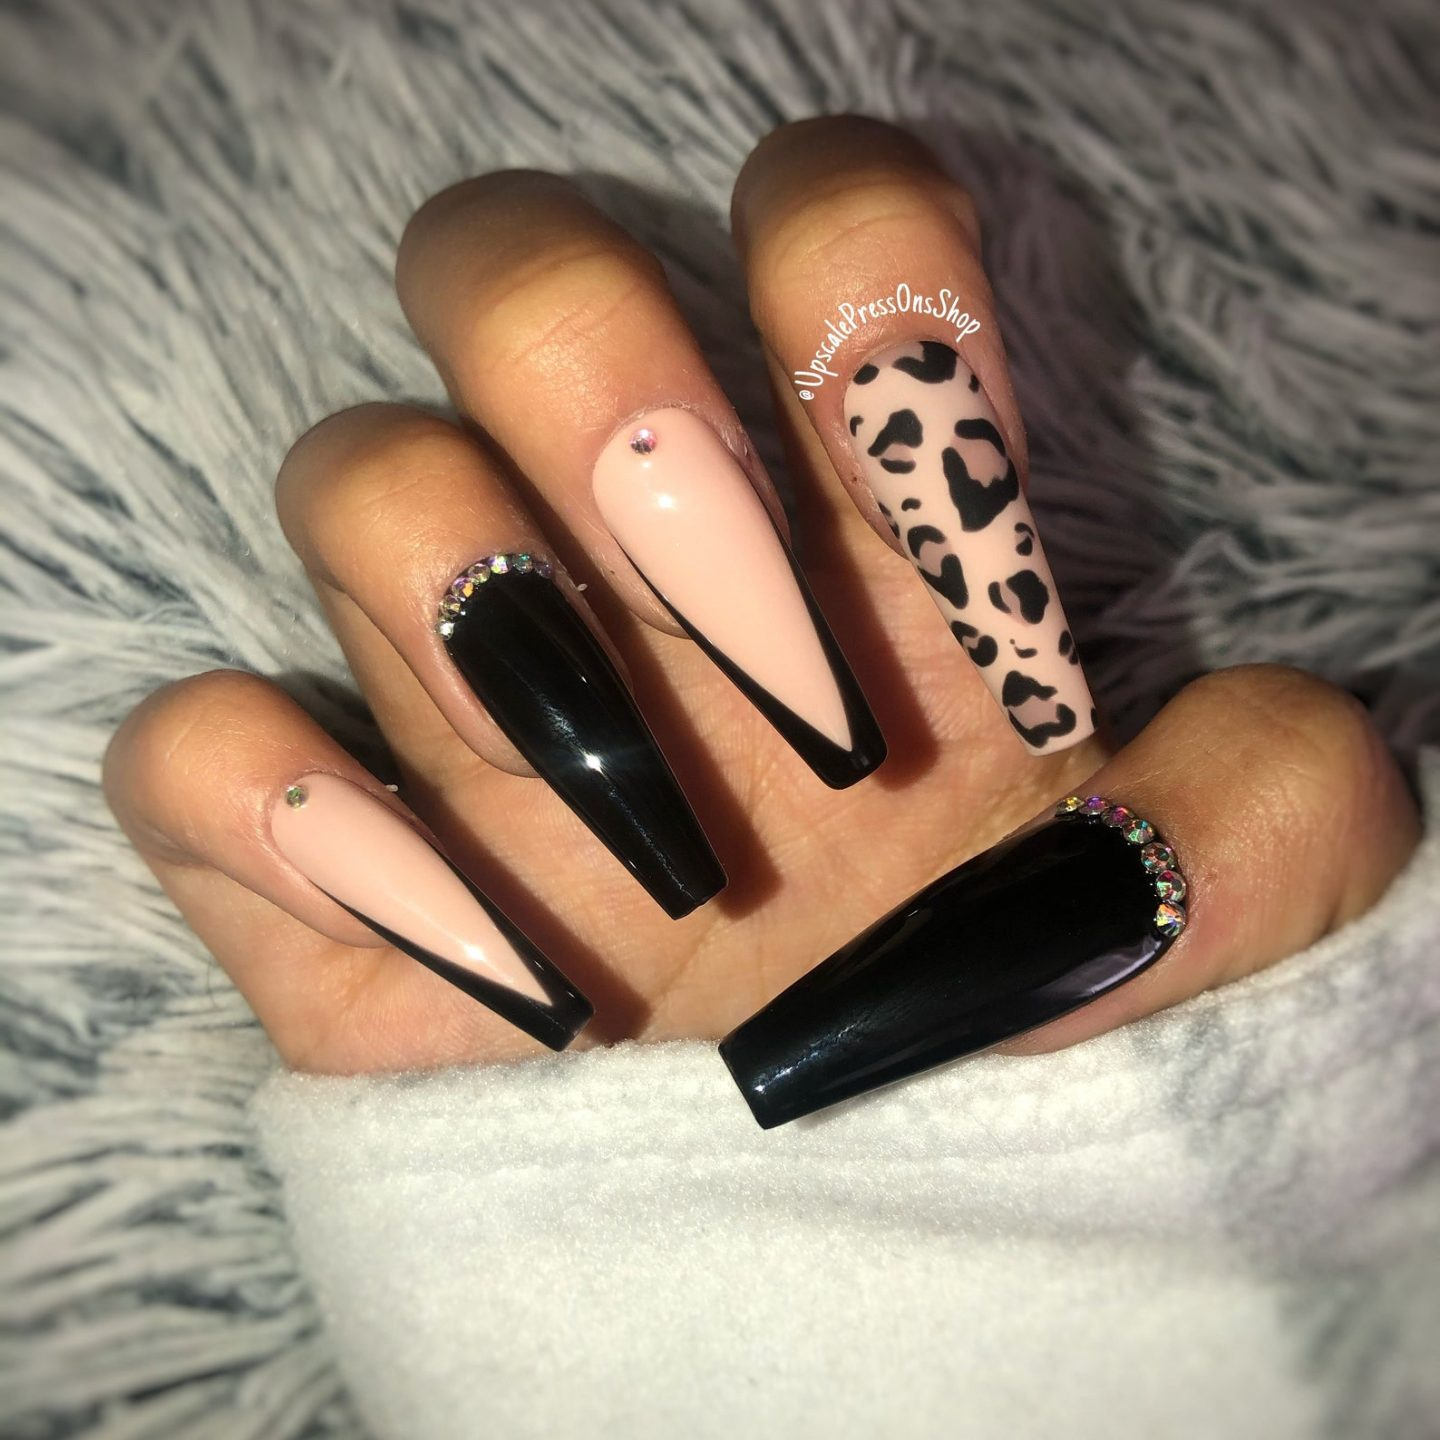 Black leopard print french tip nails